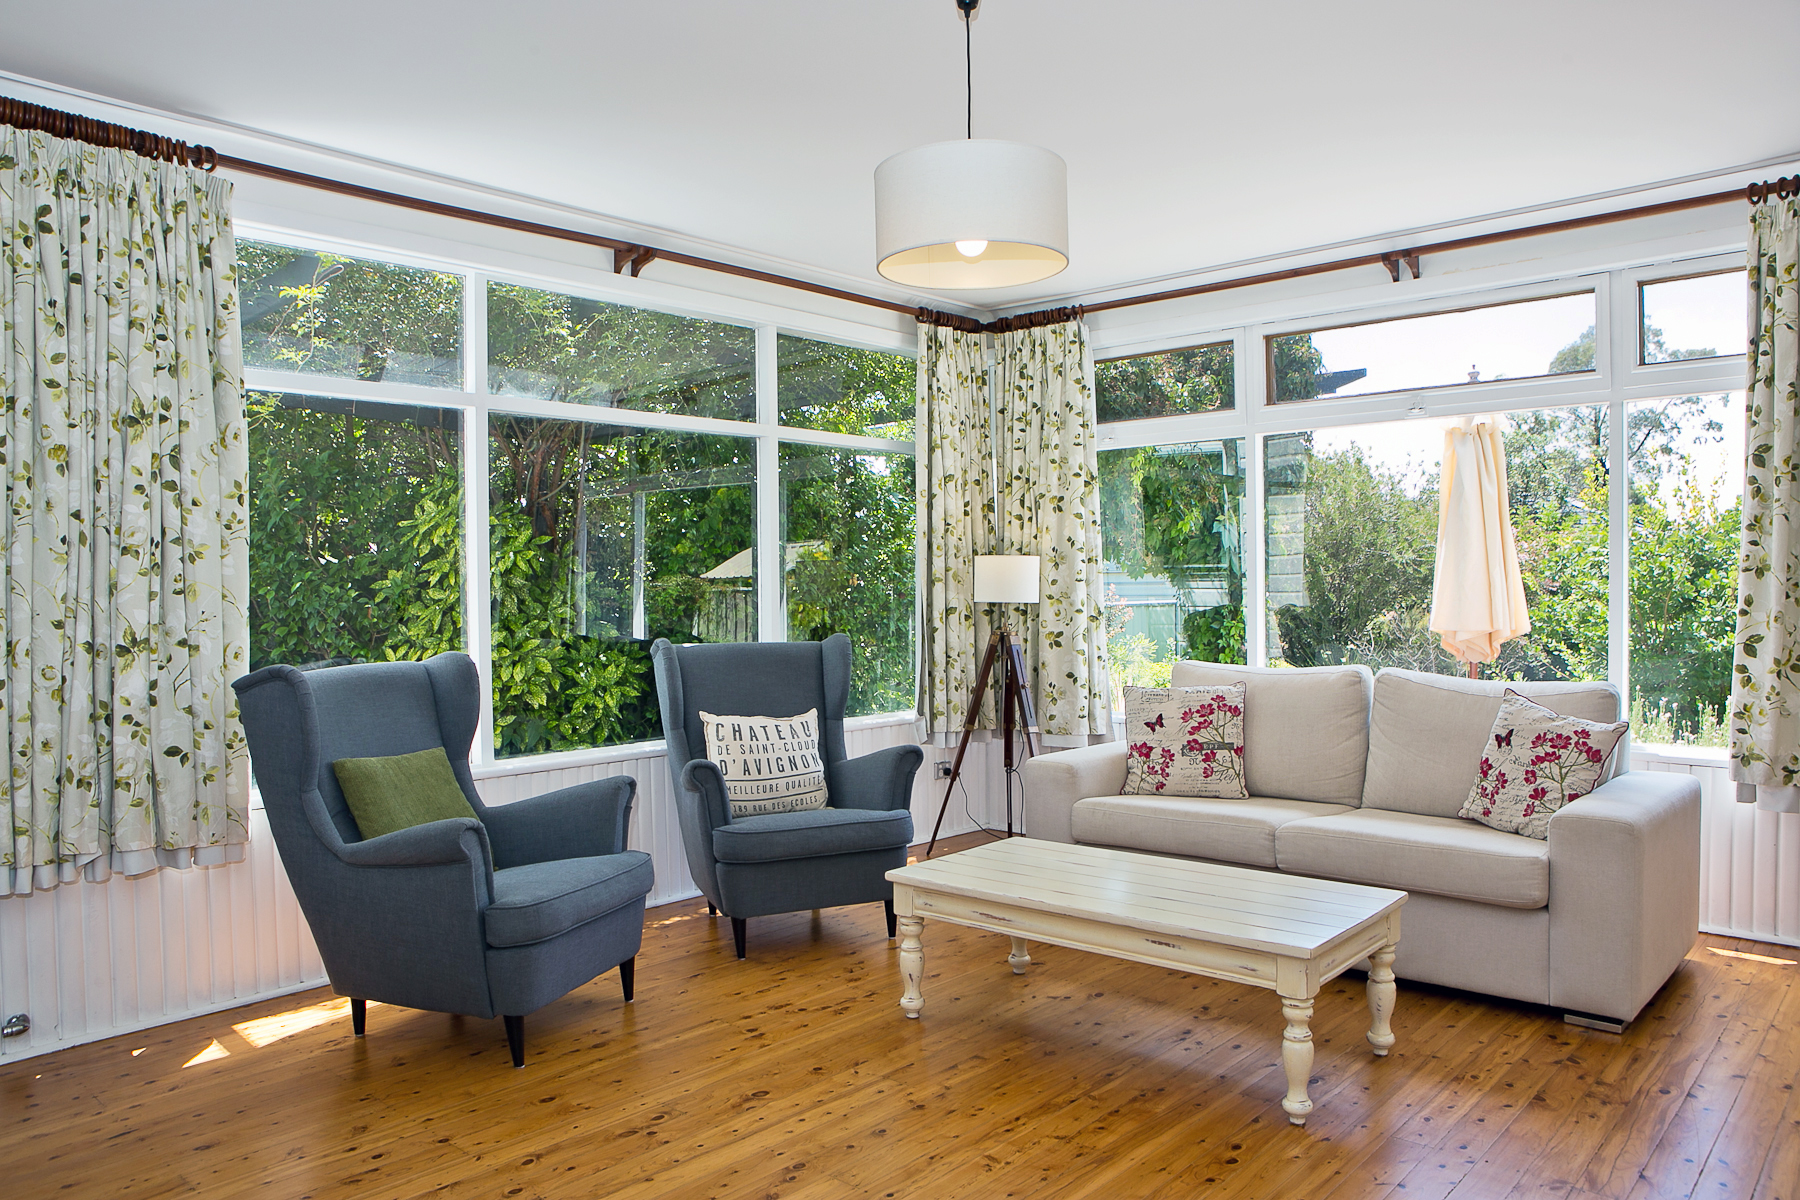 Darling Cottage - Lounge Overlooking the Garden gallery image